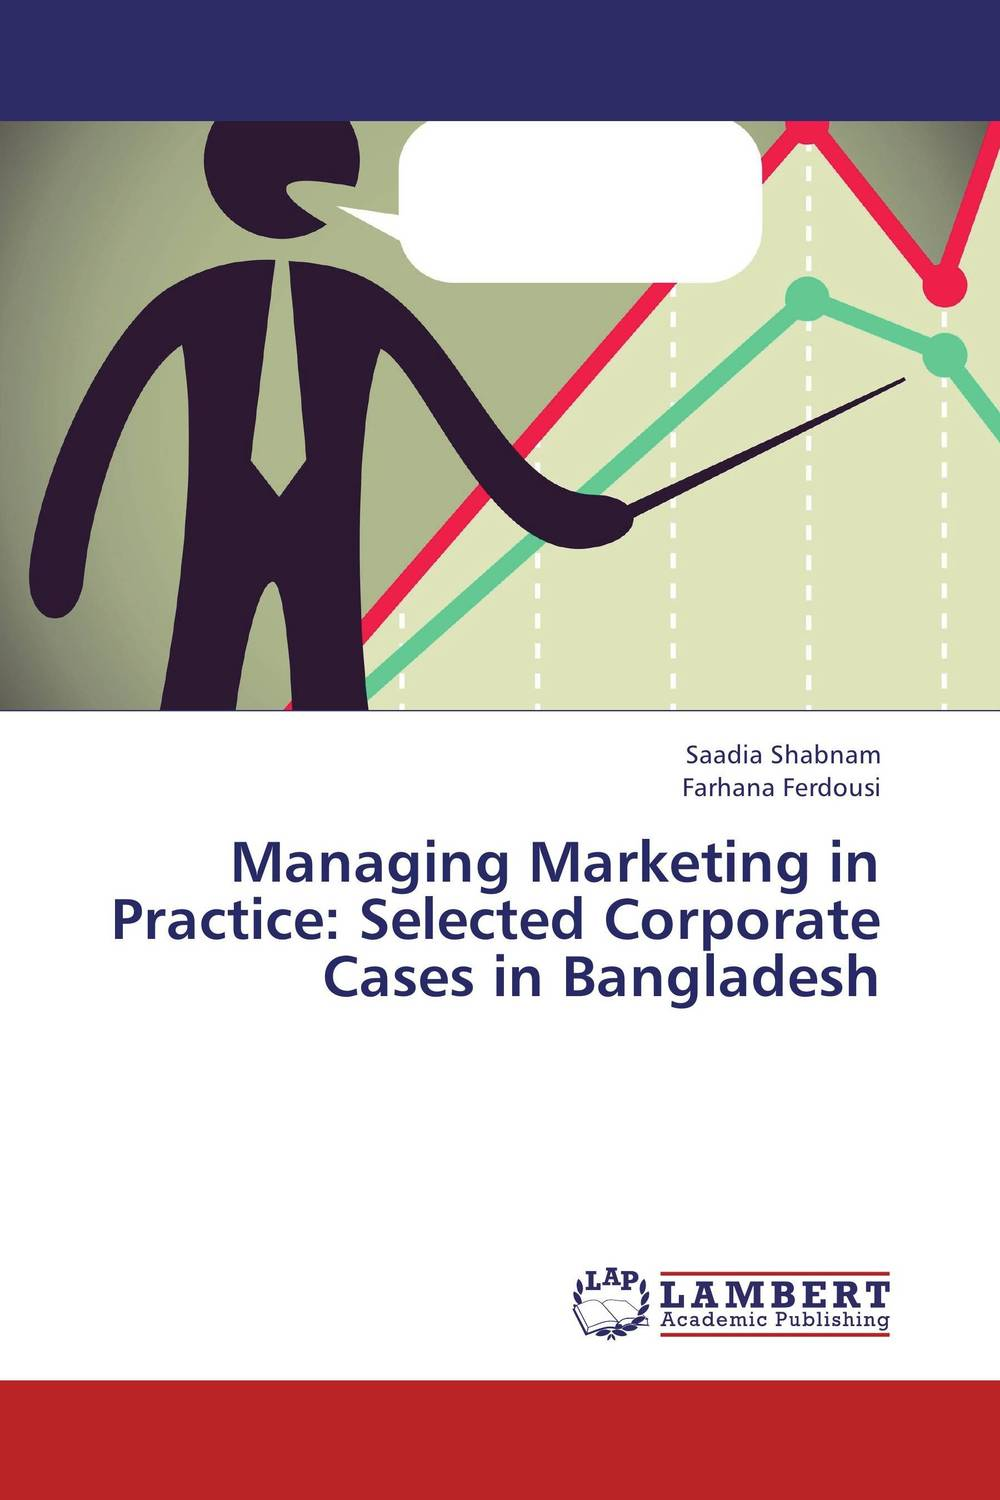 Managing Marketing in Practice: Selected Corporate Cases in Bangladesh on the distribution of information structures and focal points